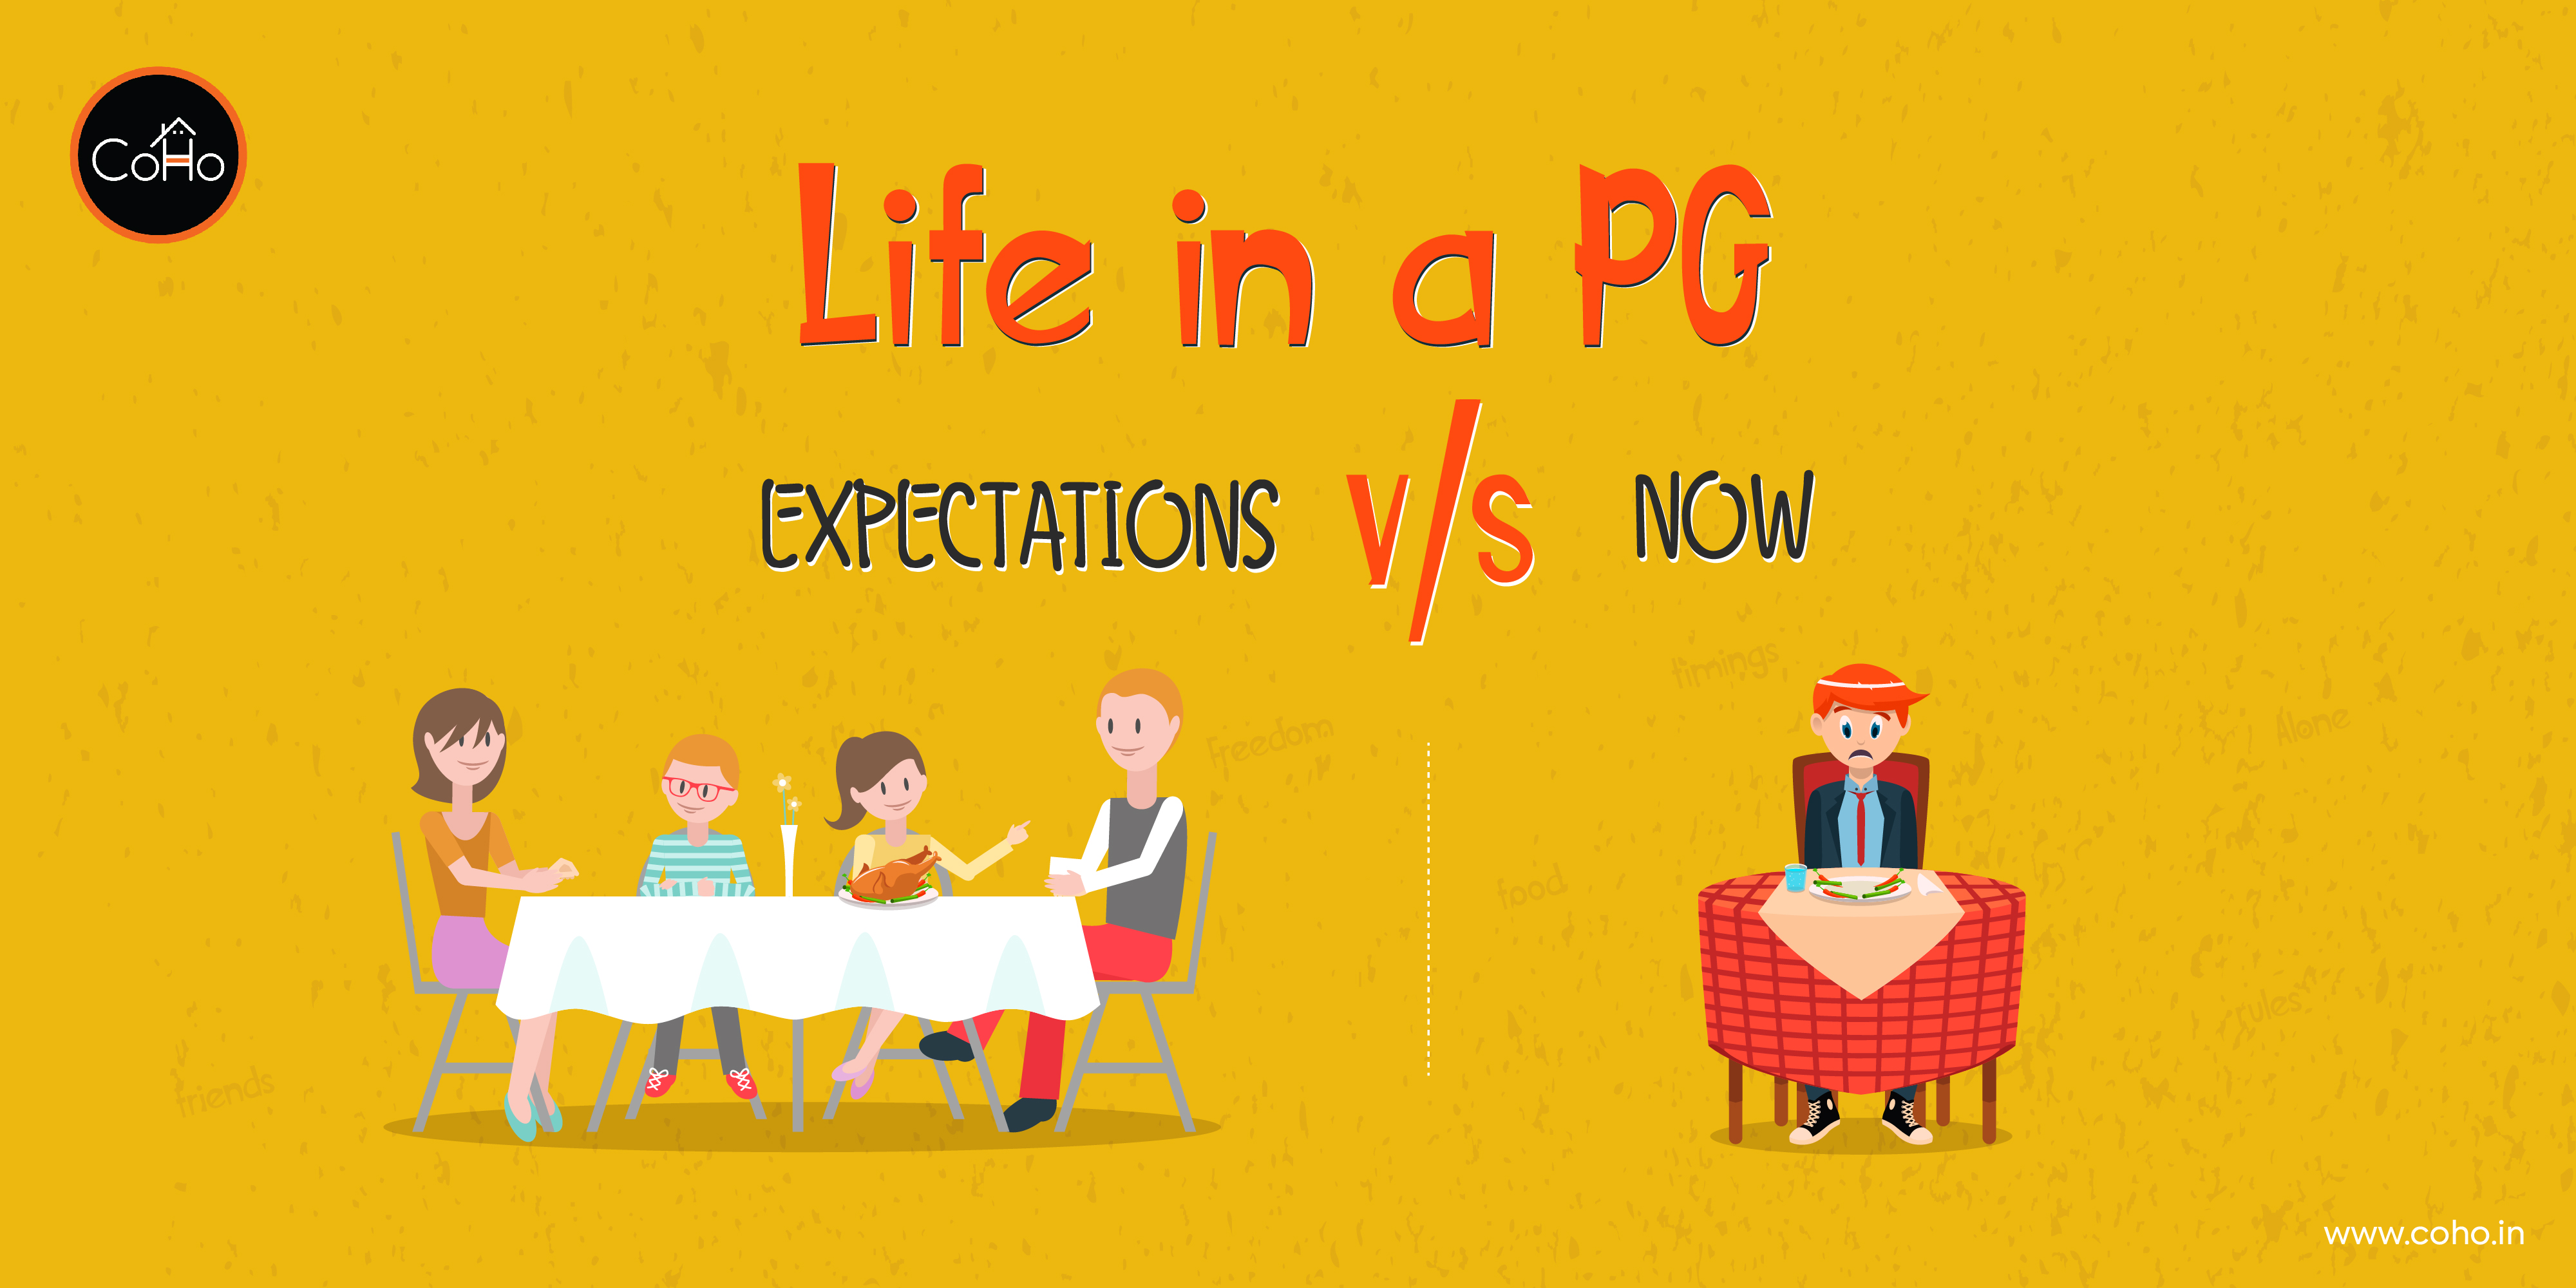 Things you'll relate to only if you have lived in a PG